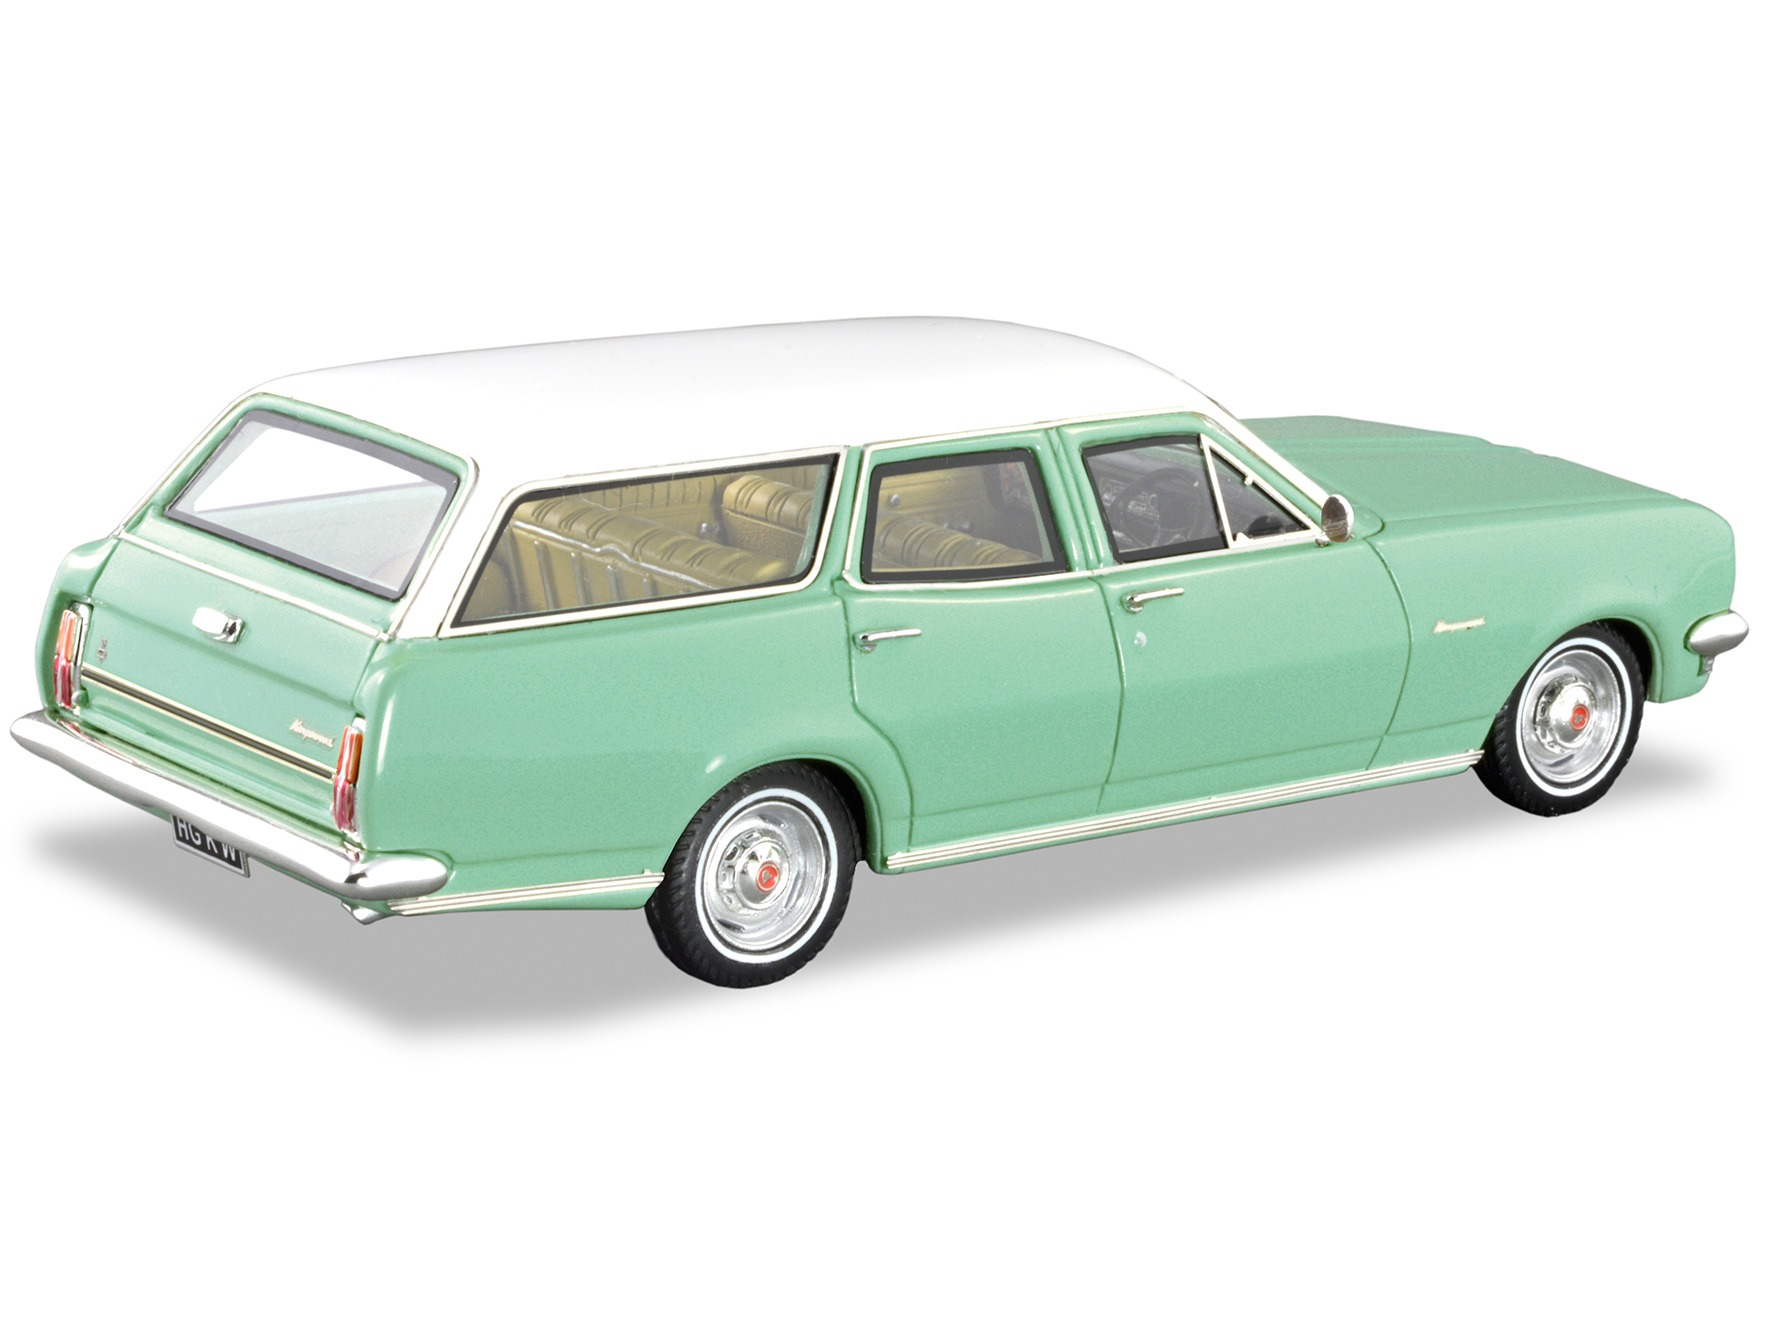 1970 HG Kingswood Wagon – Cascade Green / Kashmir White